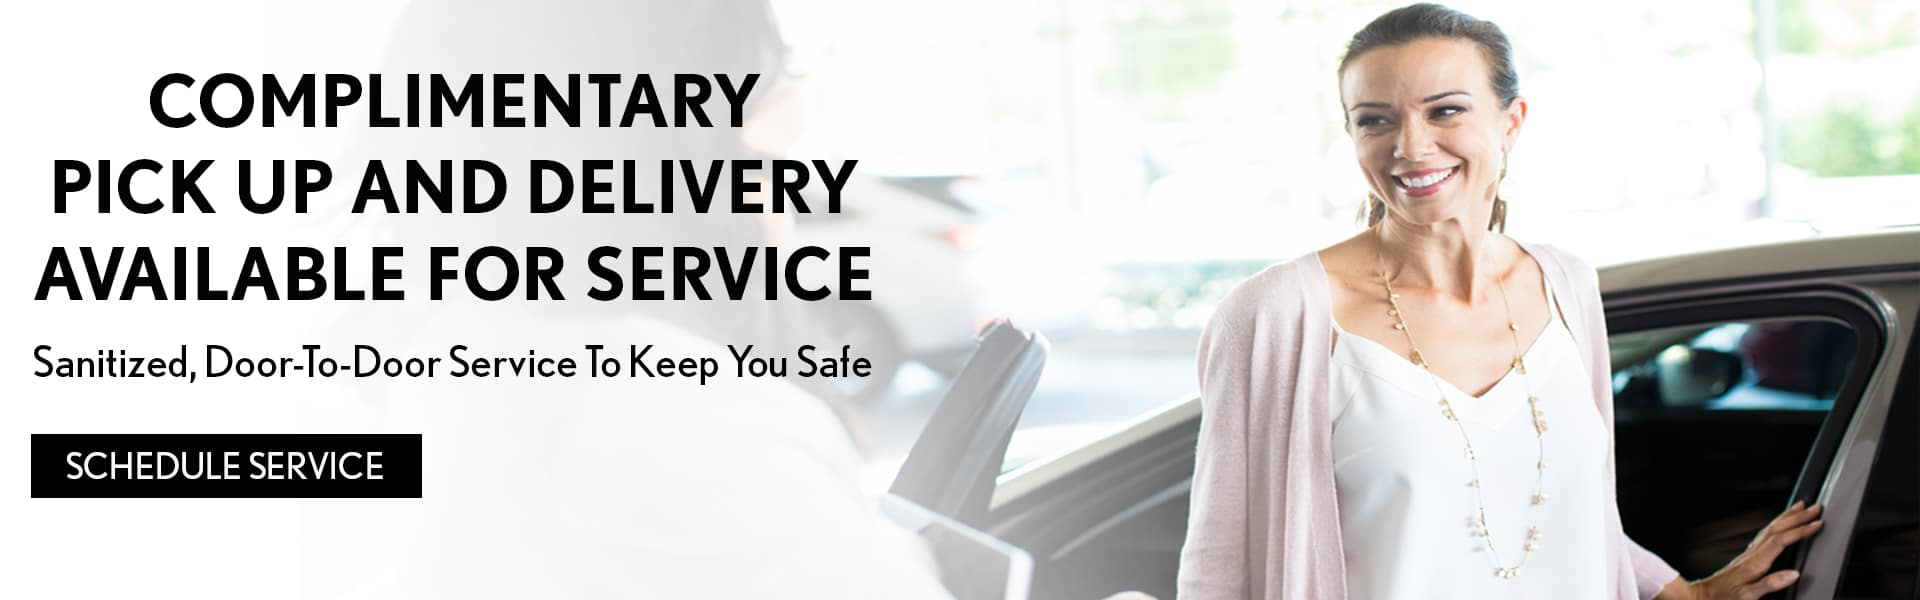 Complimentary Delivery Banner